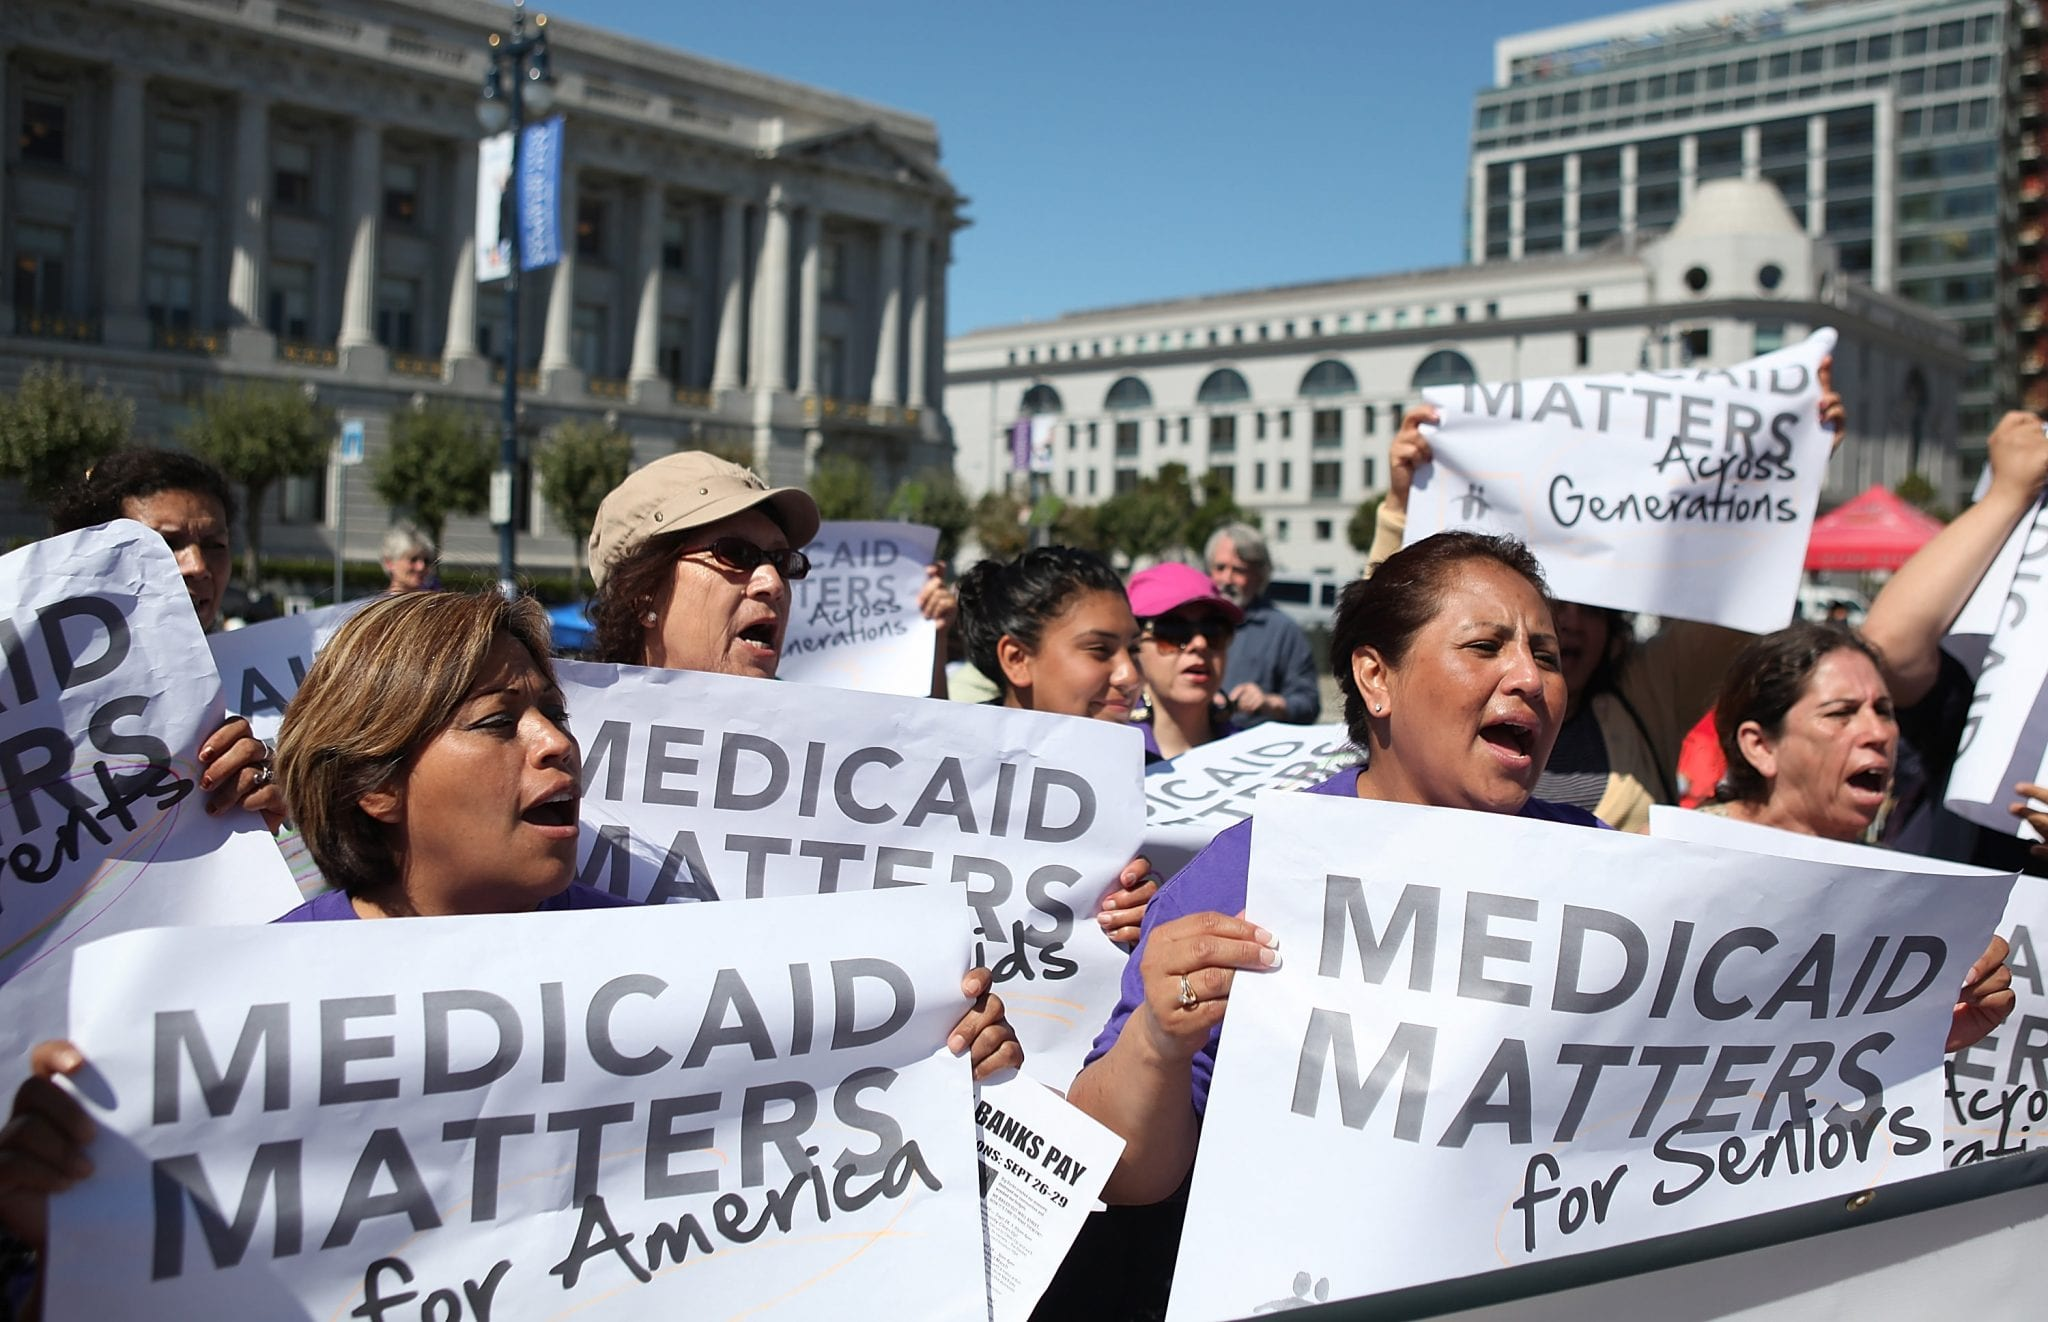 Medicaid Matters for Seniors